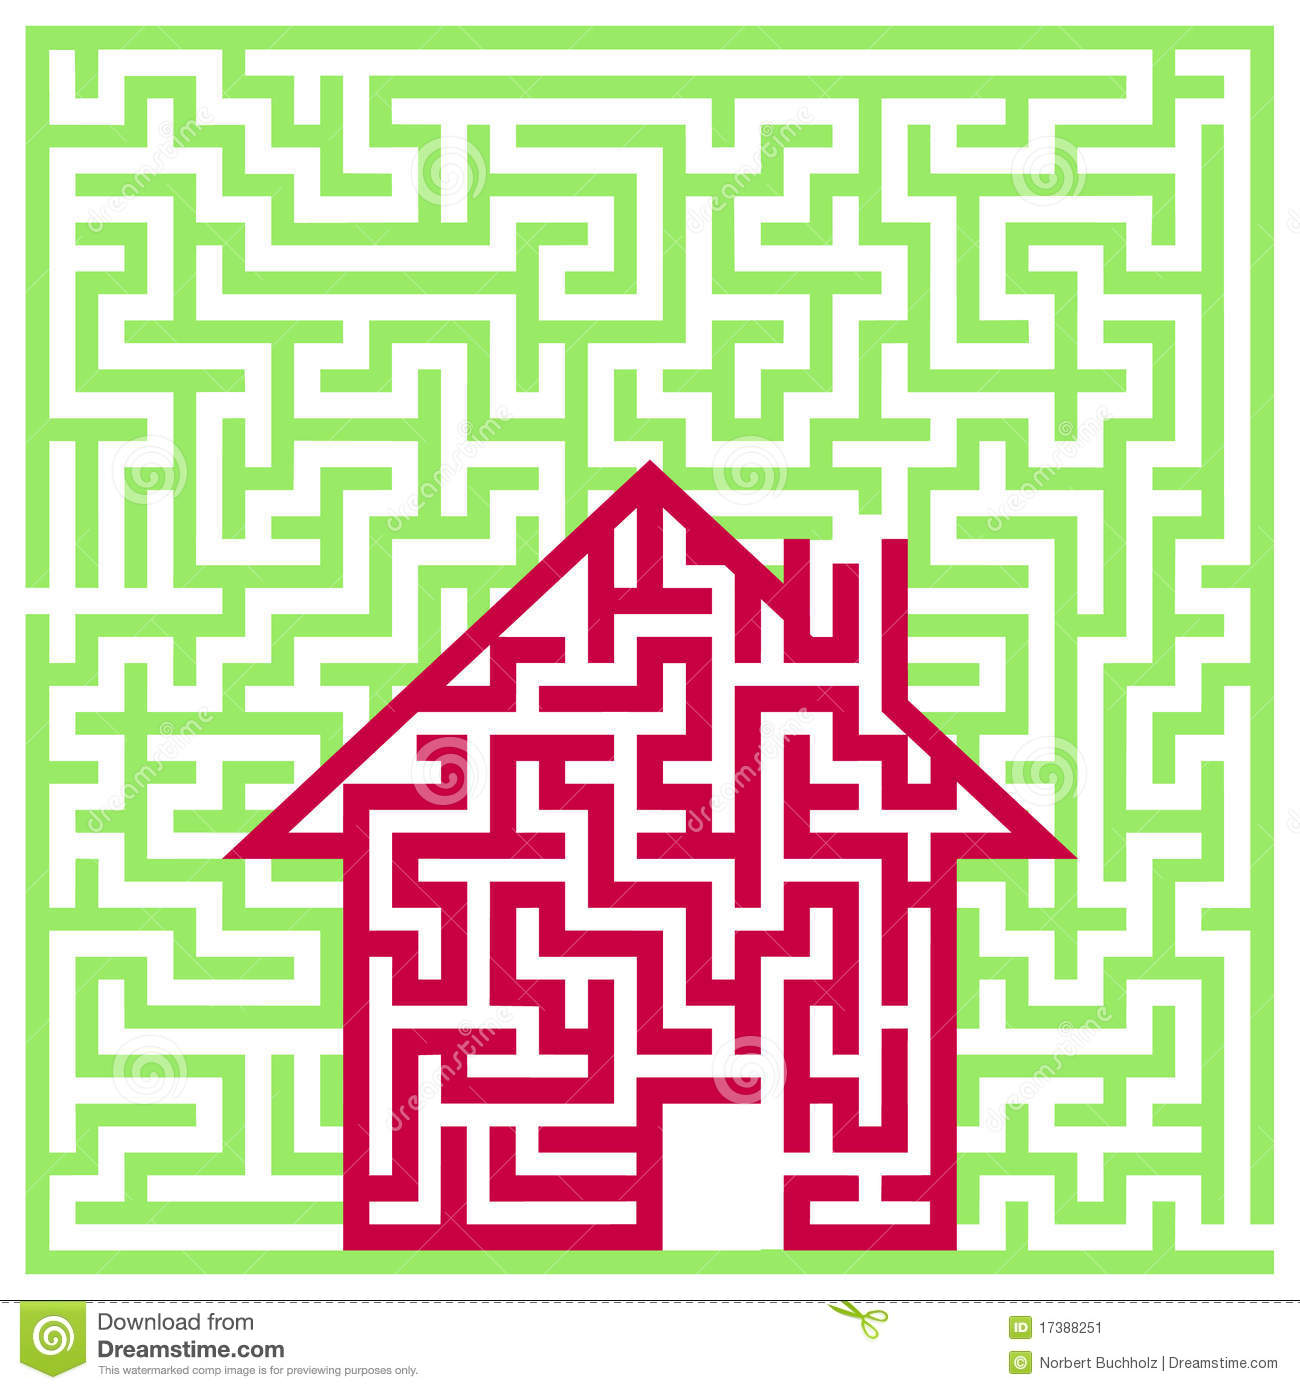 Labyrinth house stock vector. Illustration of building - 17388251